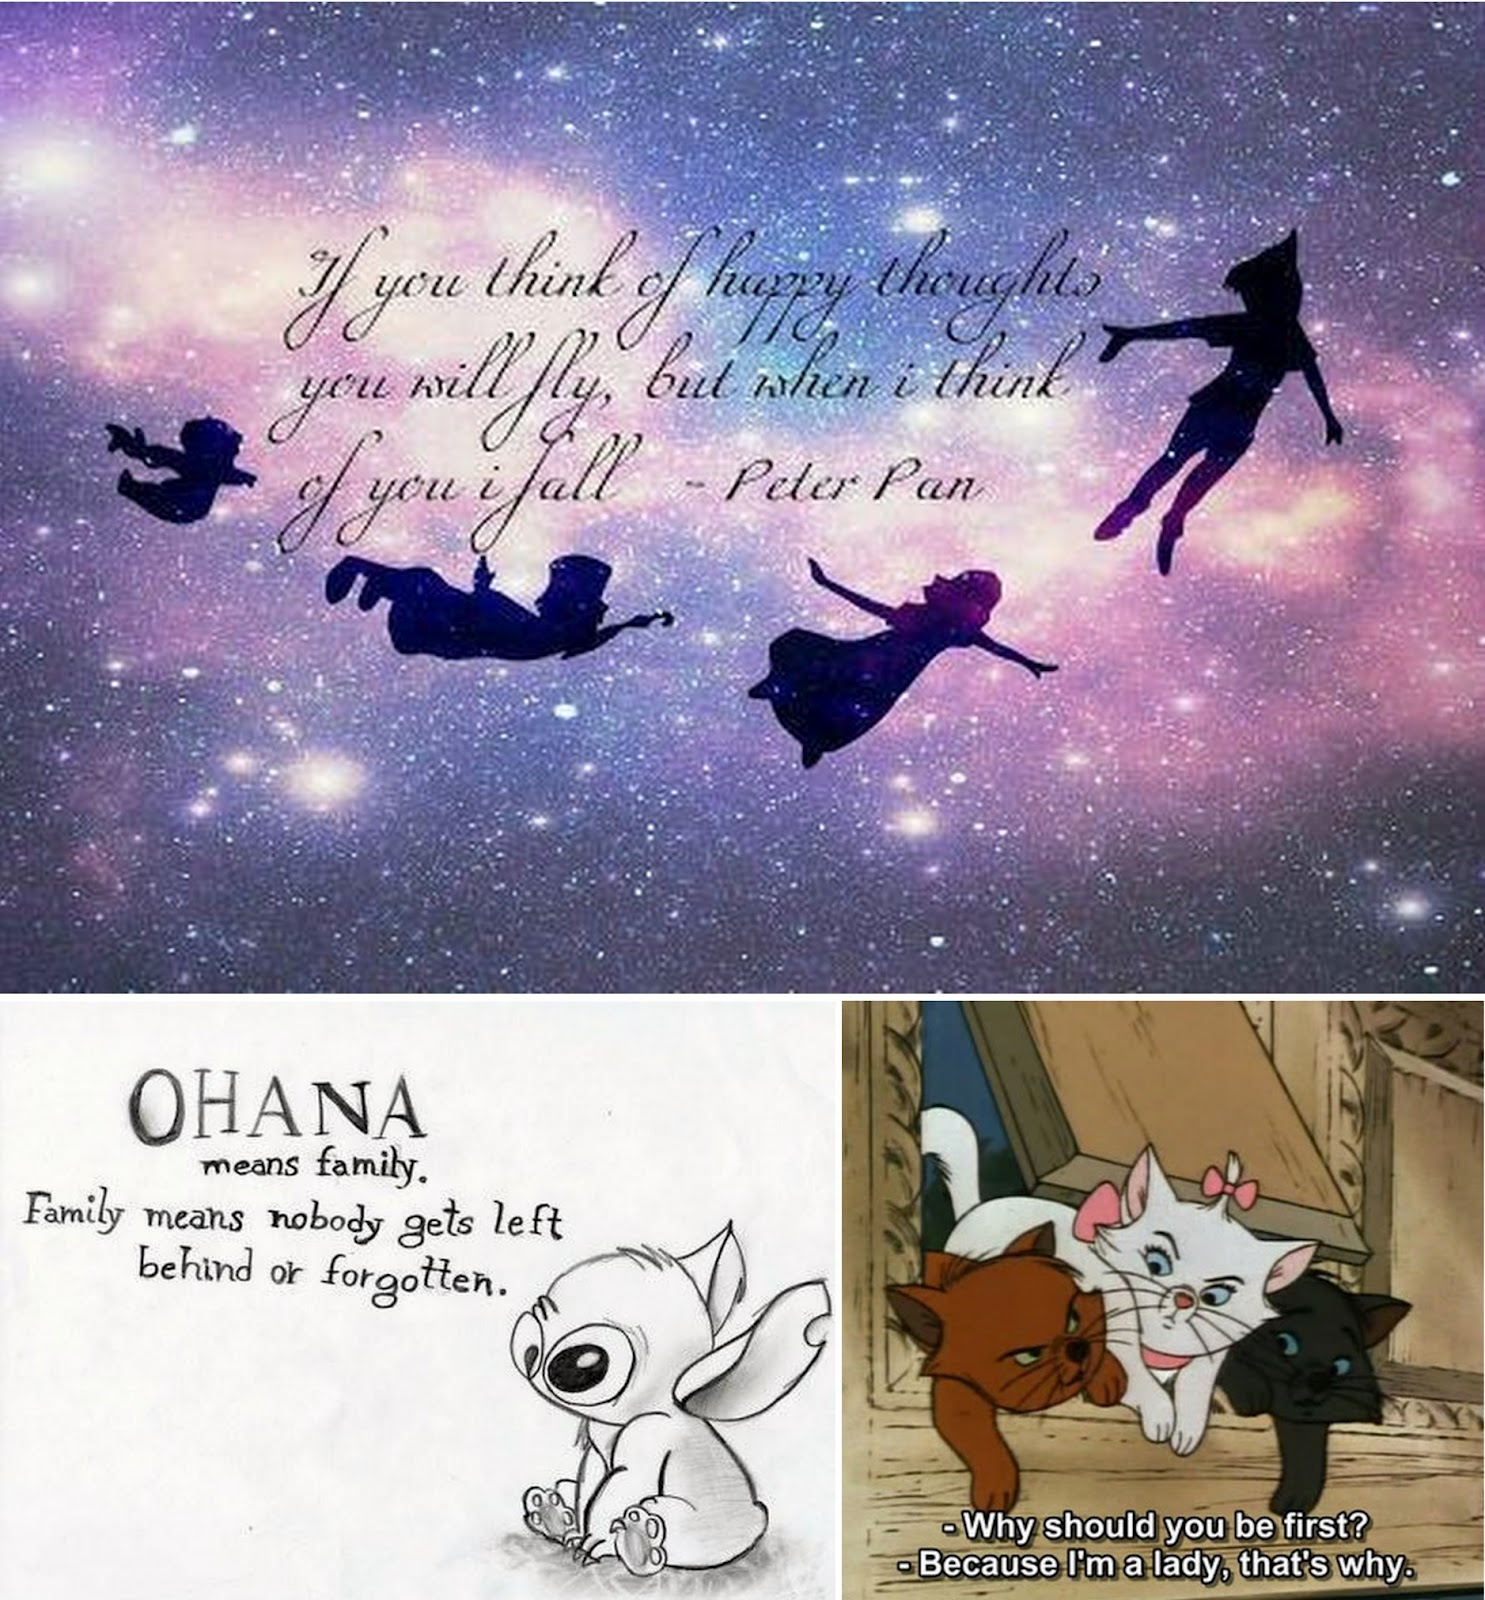 Cute Love Quotes From Disney Movies: Inspirational Quotes By Disney Movies. QuotesGram